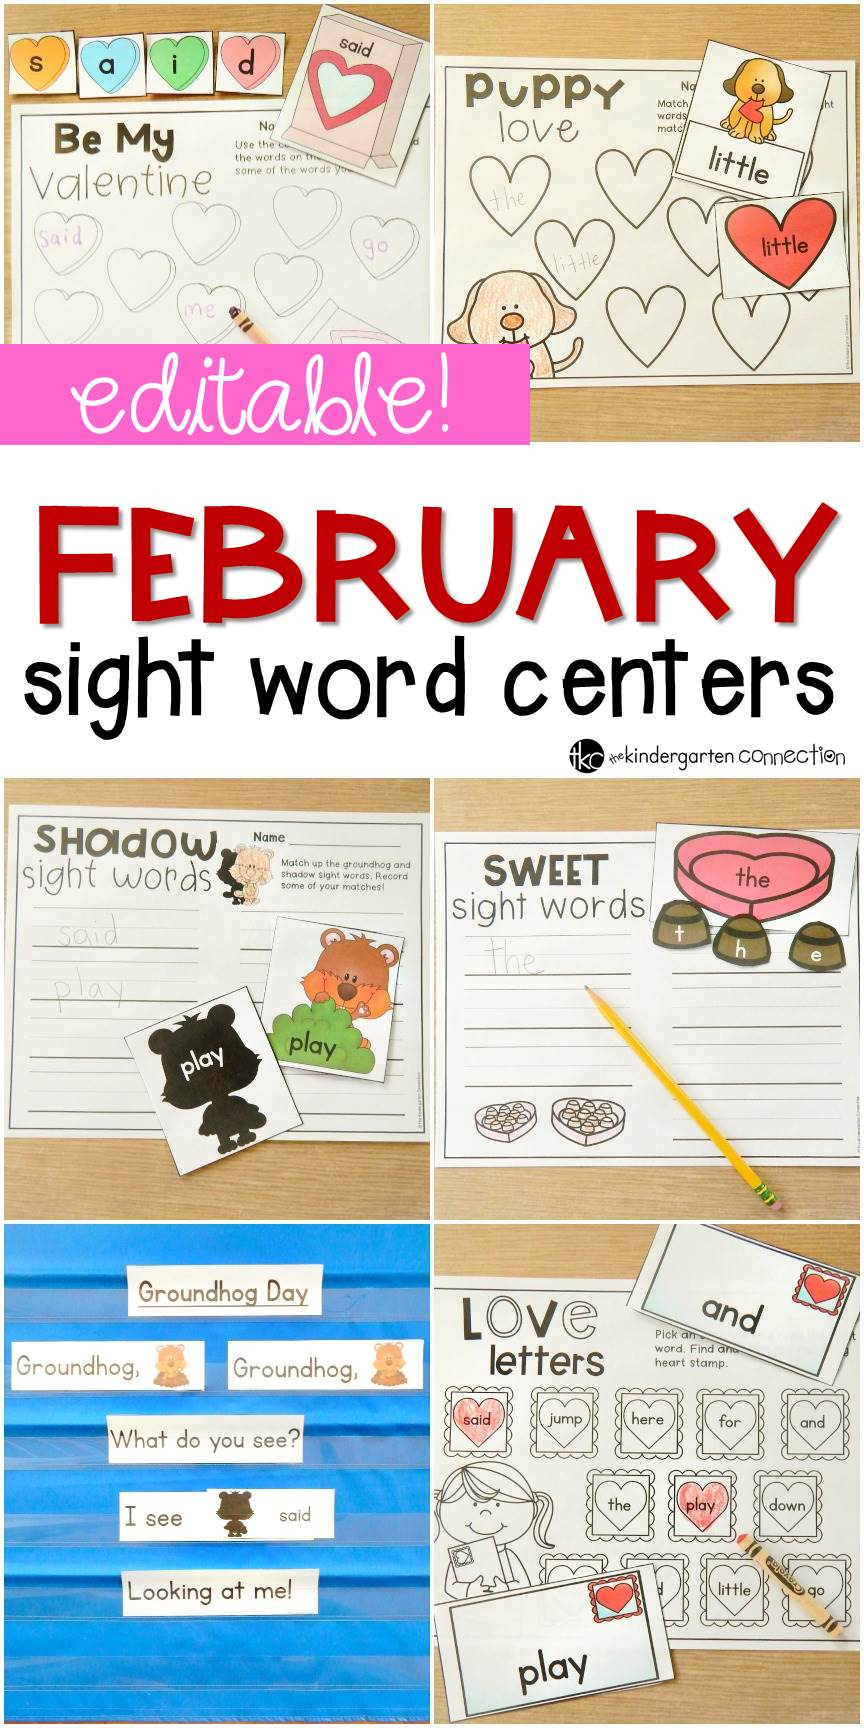 Such fun, EDITABLE sight word games for Valentine's Day! You can use them with any word list!